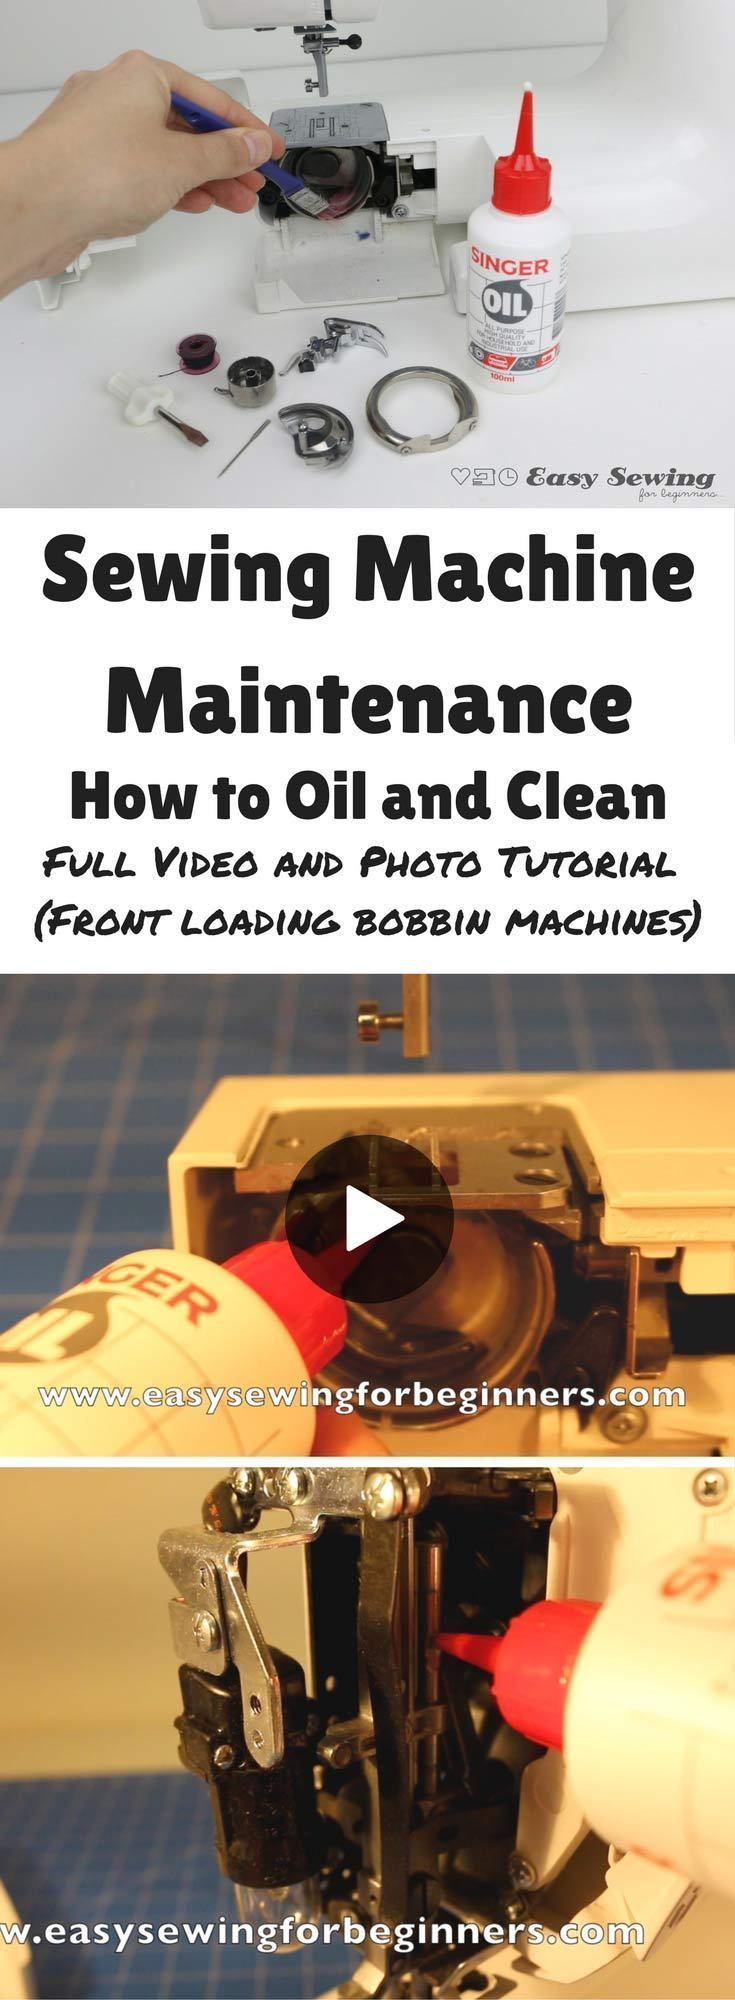 Sewing Machine Maintenance How to Oil and Clean Video Tutorial (Front Loading Bobbin | Sewing machin